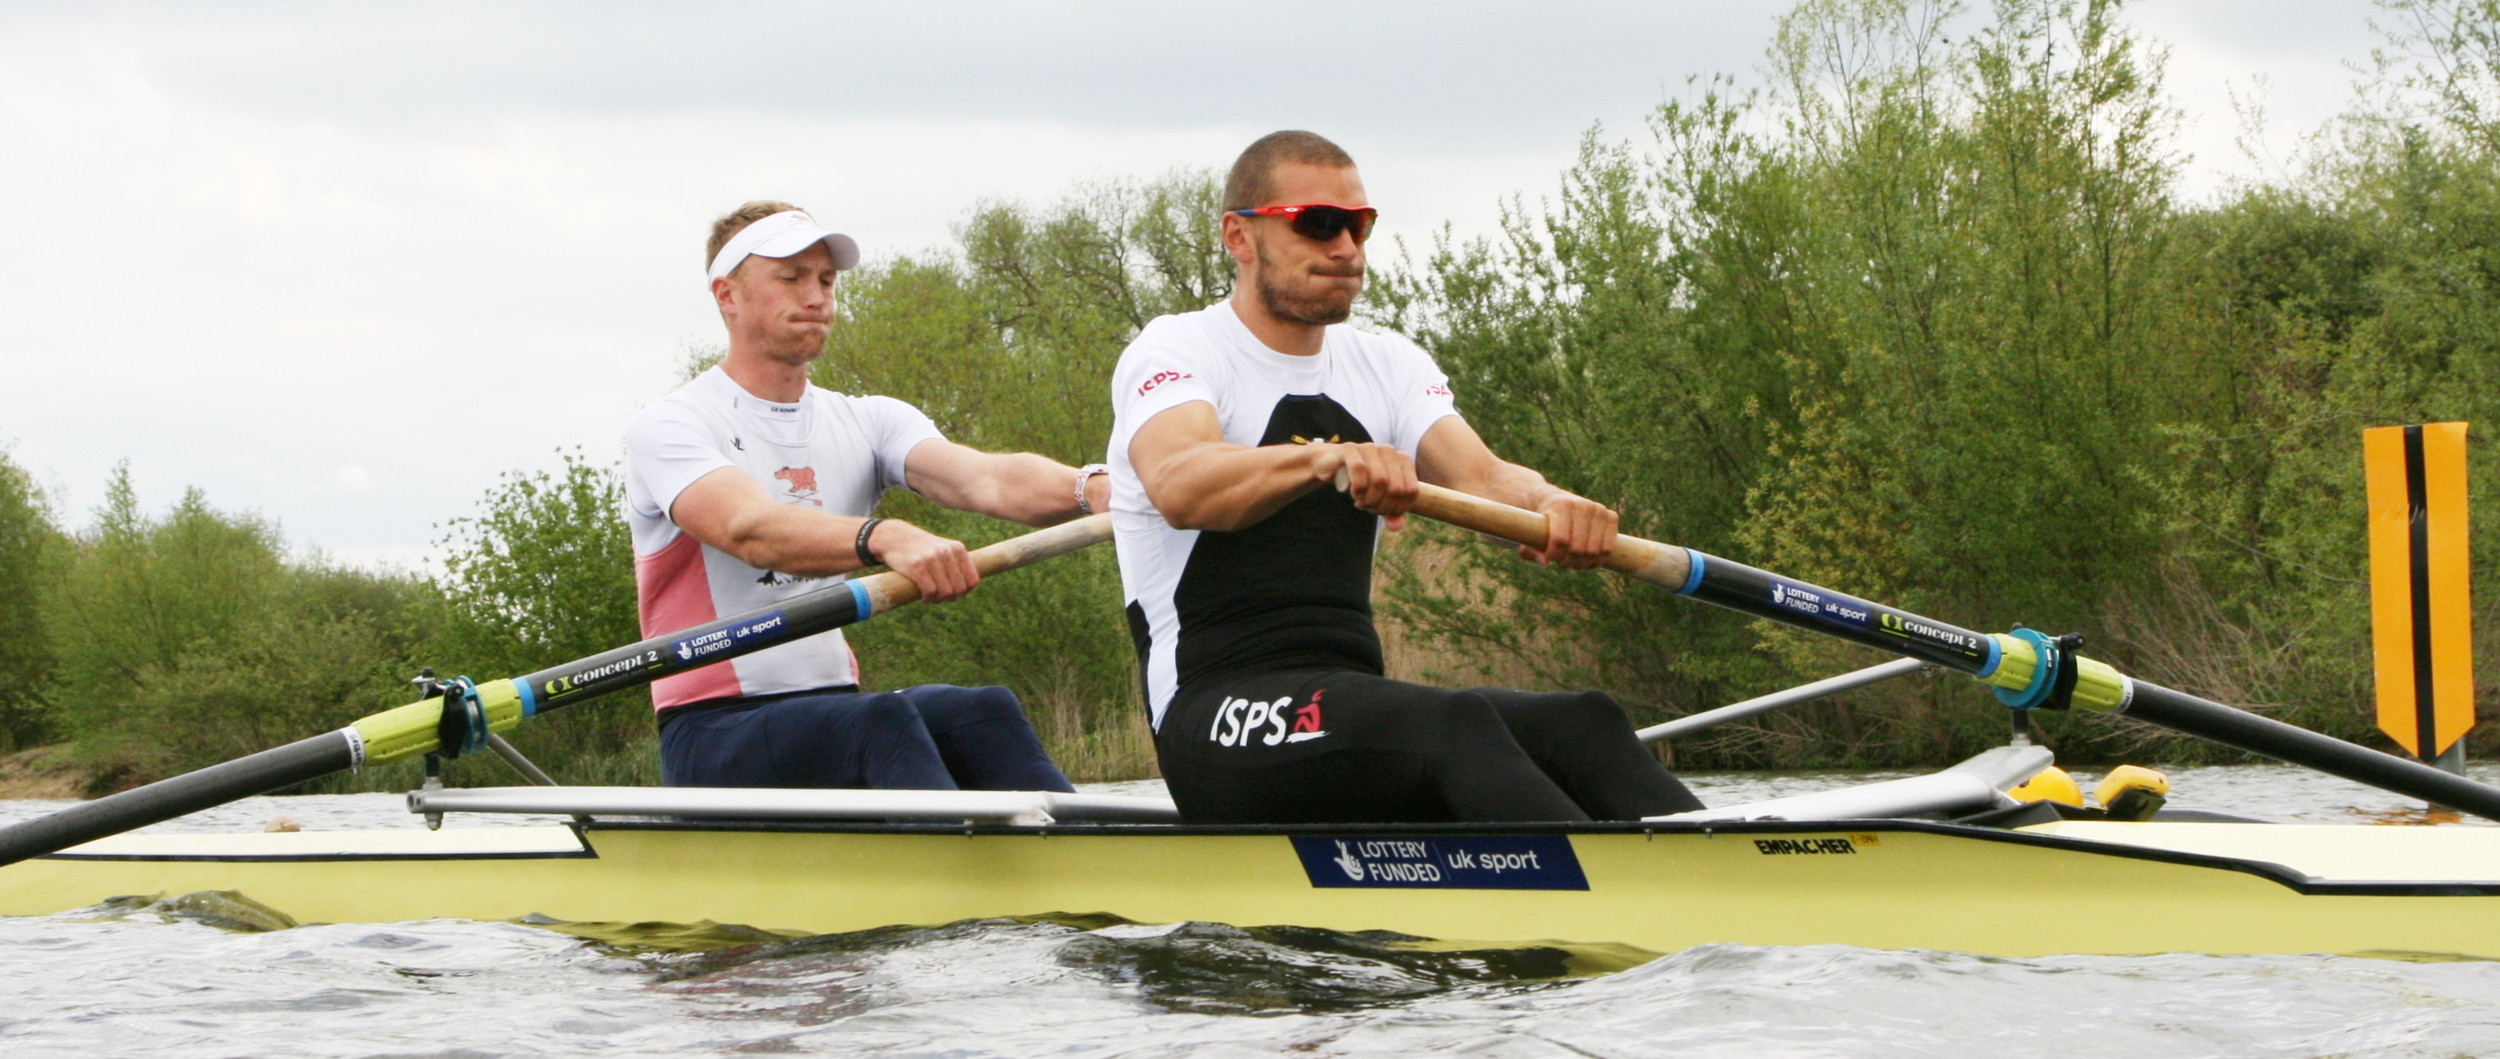 Moe and I taking our first stroke at last year's final trials. We spend hours perfecting those facial expressions!